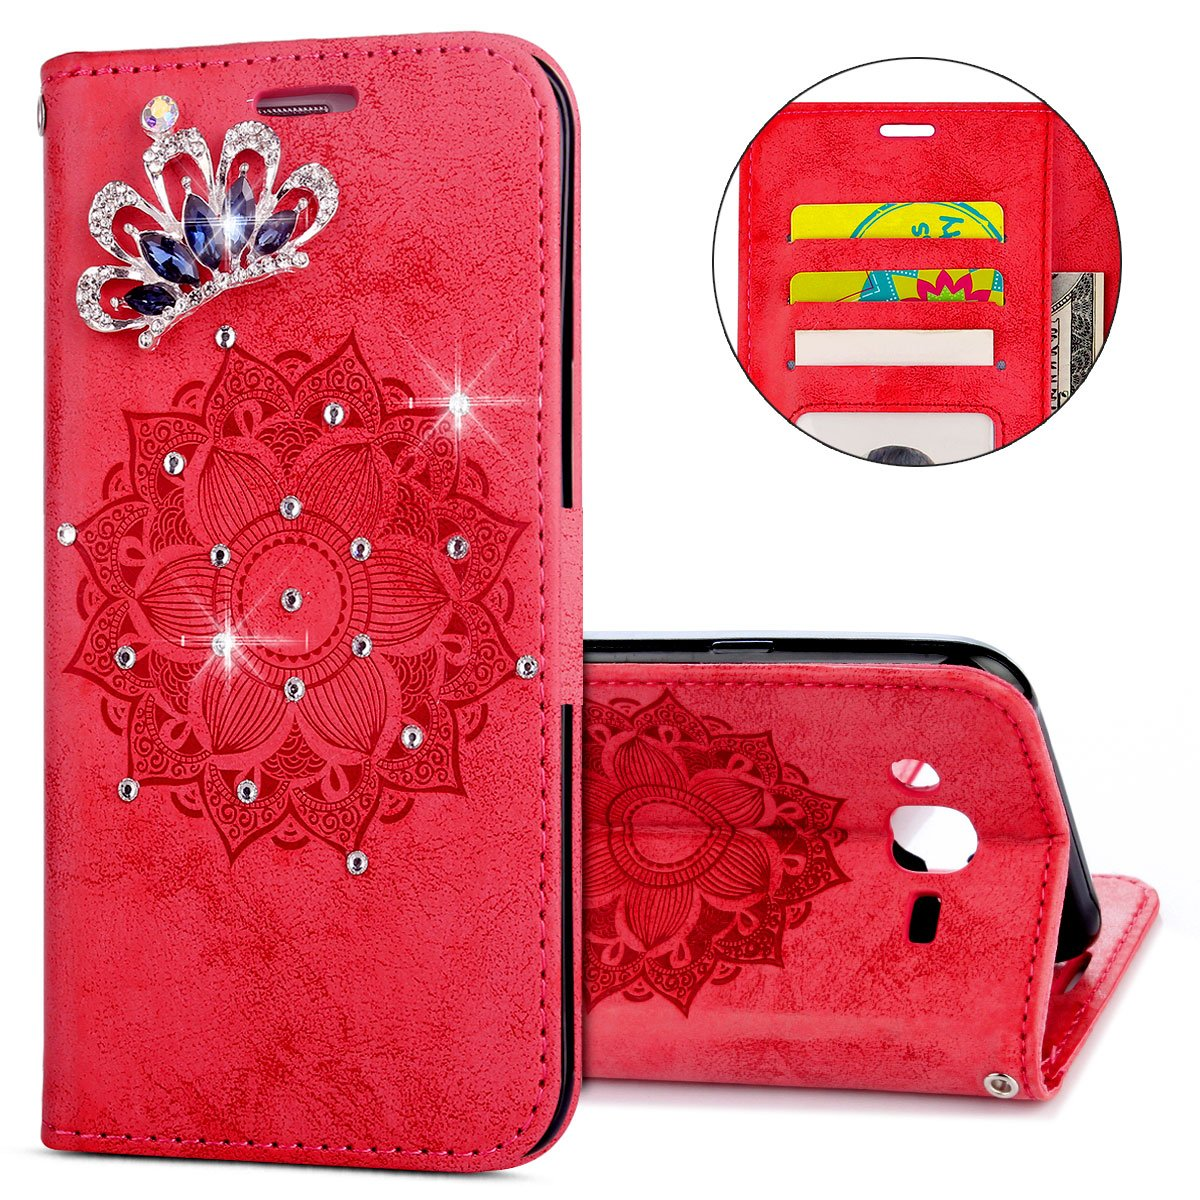 IKASEFU Galaxy J5 Case,3D Clear Crown Rhinestone Diamond Bling Glitter Wallet with Card Holder Emboss Mandala Floral Pu Leather Magnetic Flip Case Protective Cover for Samsung Galaxy J5,Red